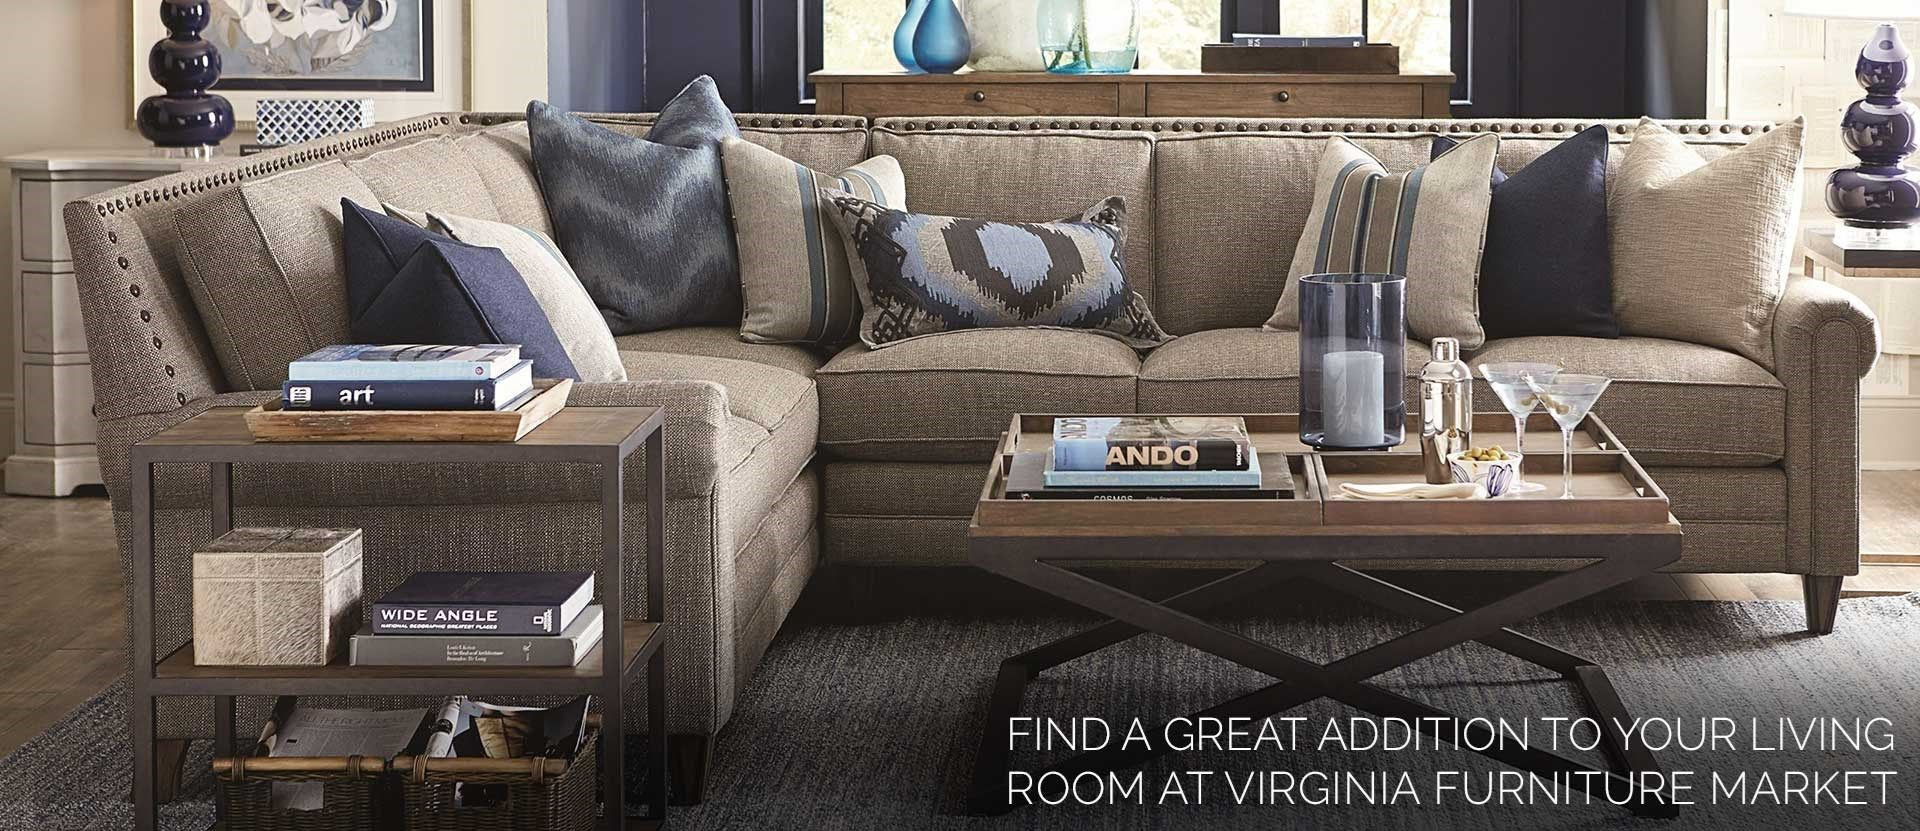 Design Your Own Living Room Furniture Find A Great Addition Of Living Room Furniture At Virginia